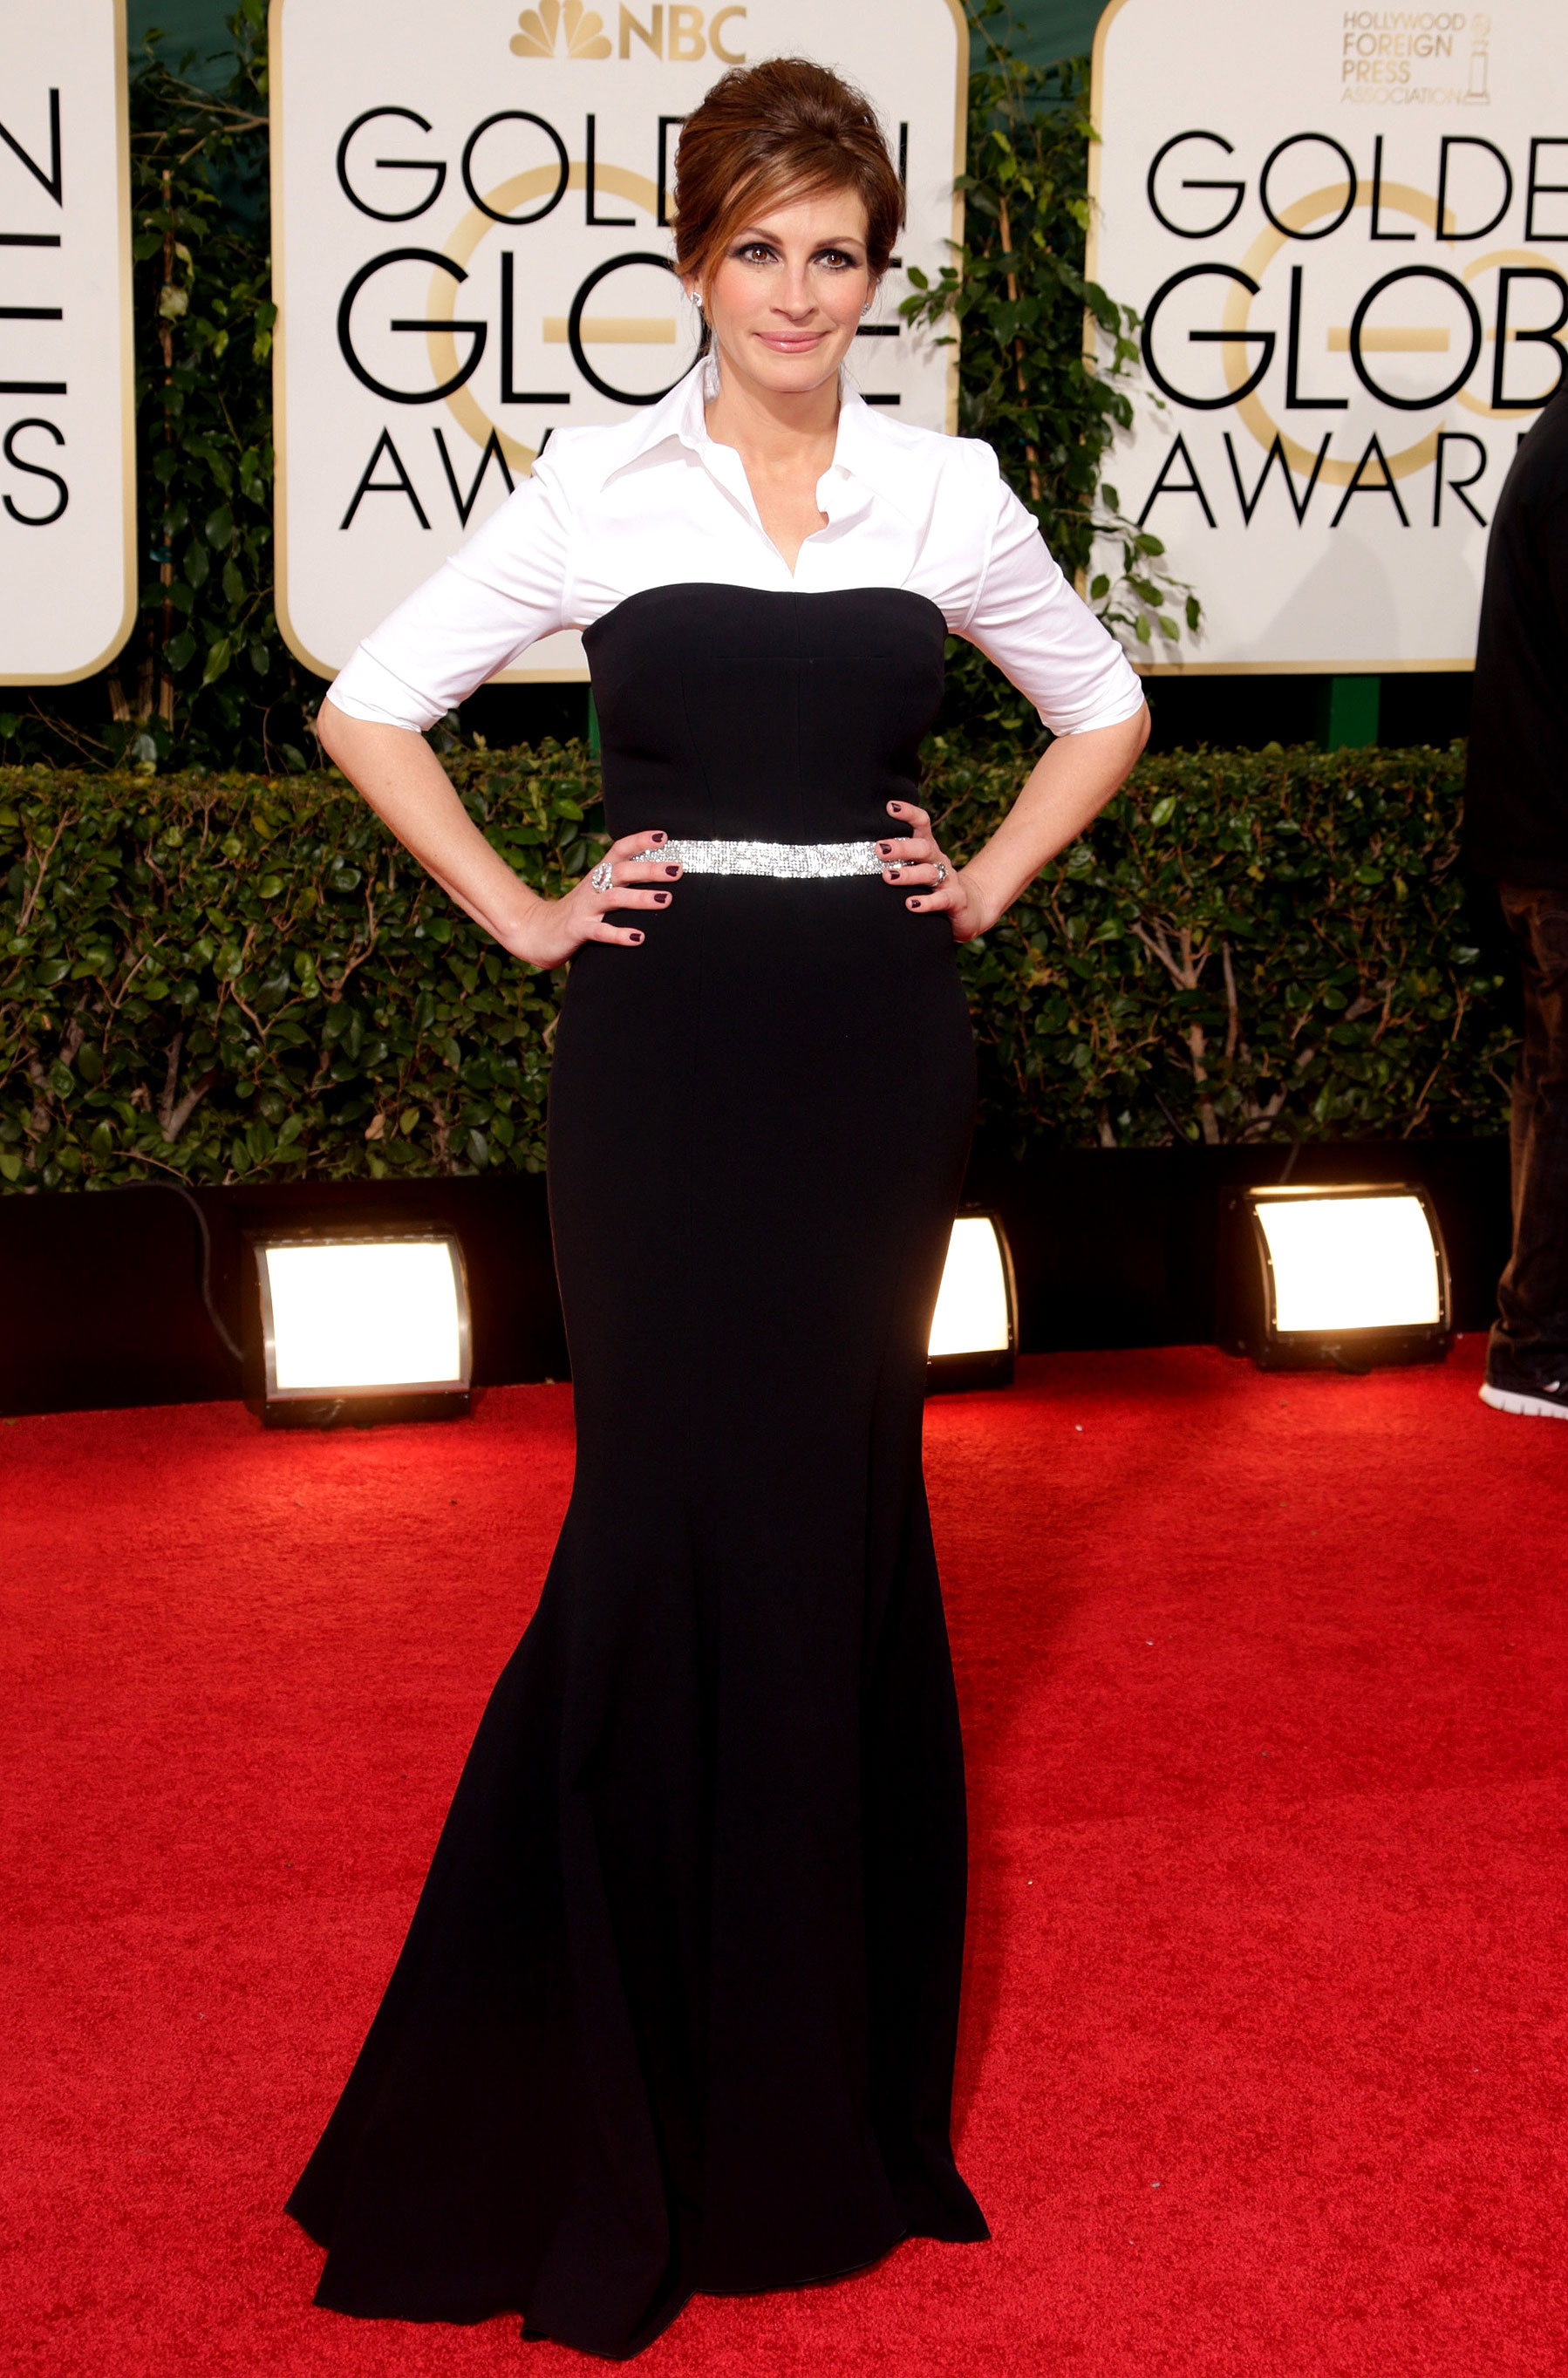 Julia Roberts - To make the star feel more comfortable in her strapless Dolce & Gabbana LBD at the 2014 Golden Globes, she layered a crisp white blouse underneath — and we were obsessed!